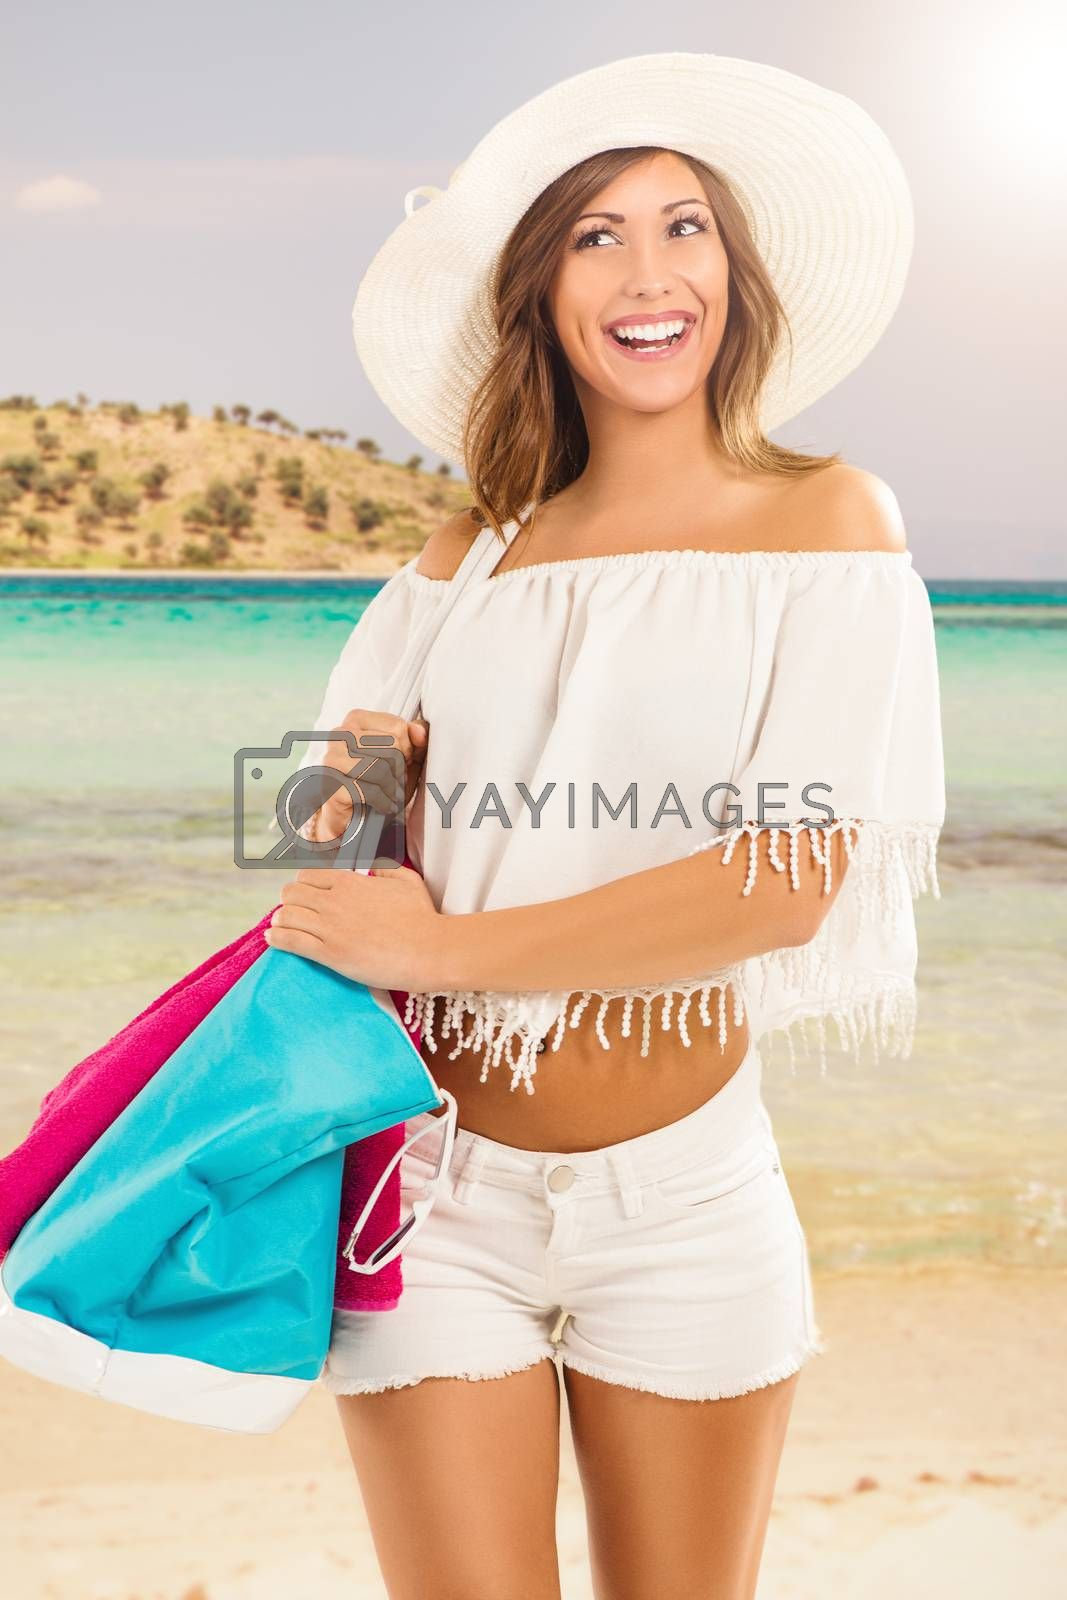 Beautiful young woman on summer vacation. She is standing with hat and holding bag and towel for beach.